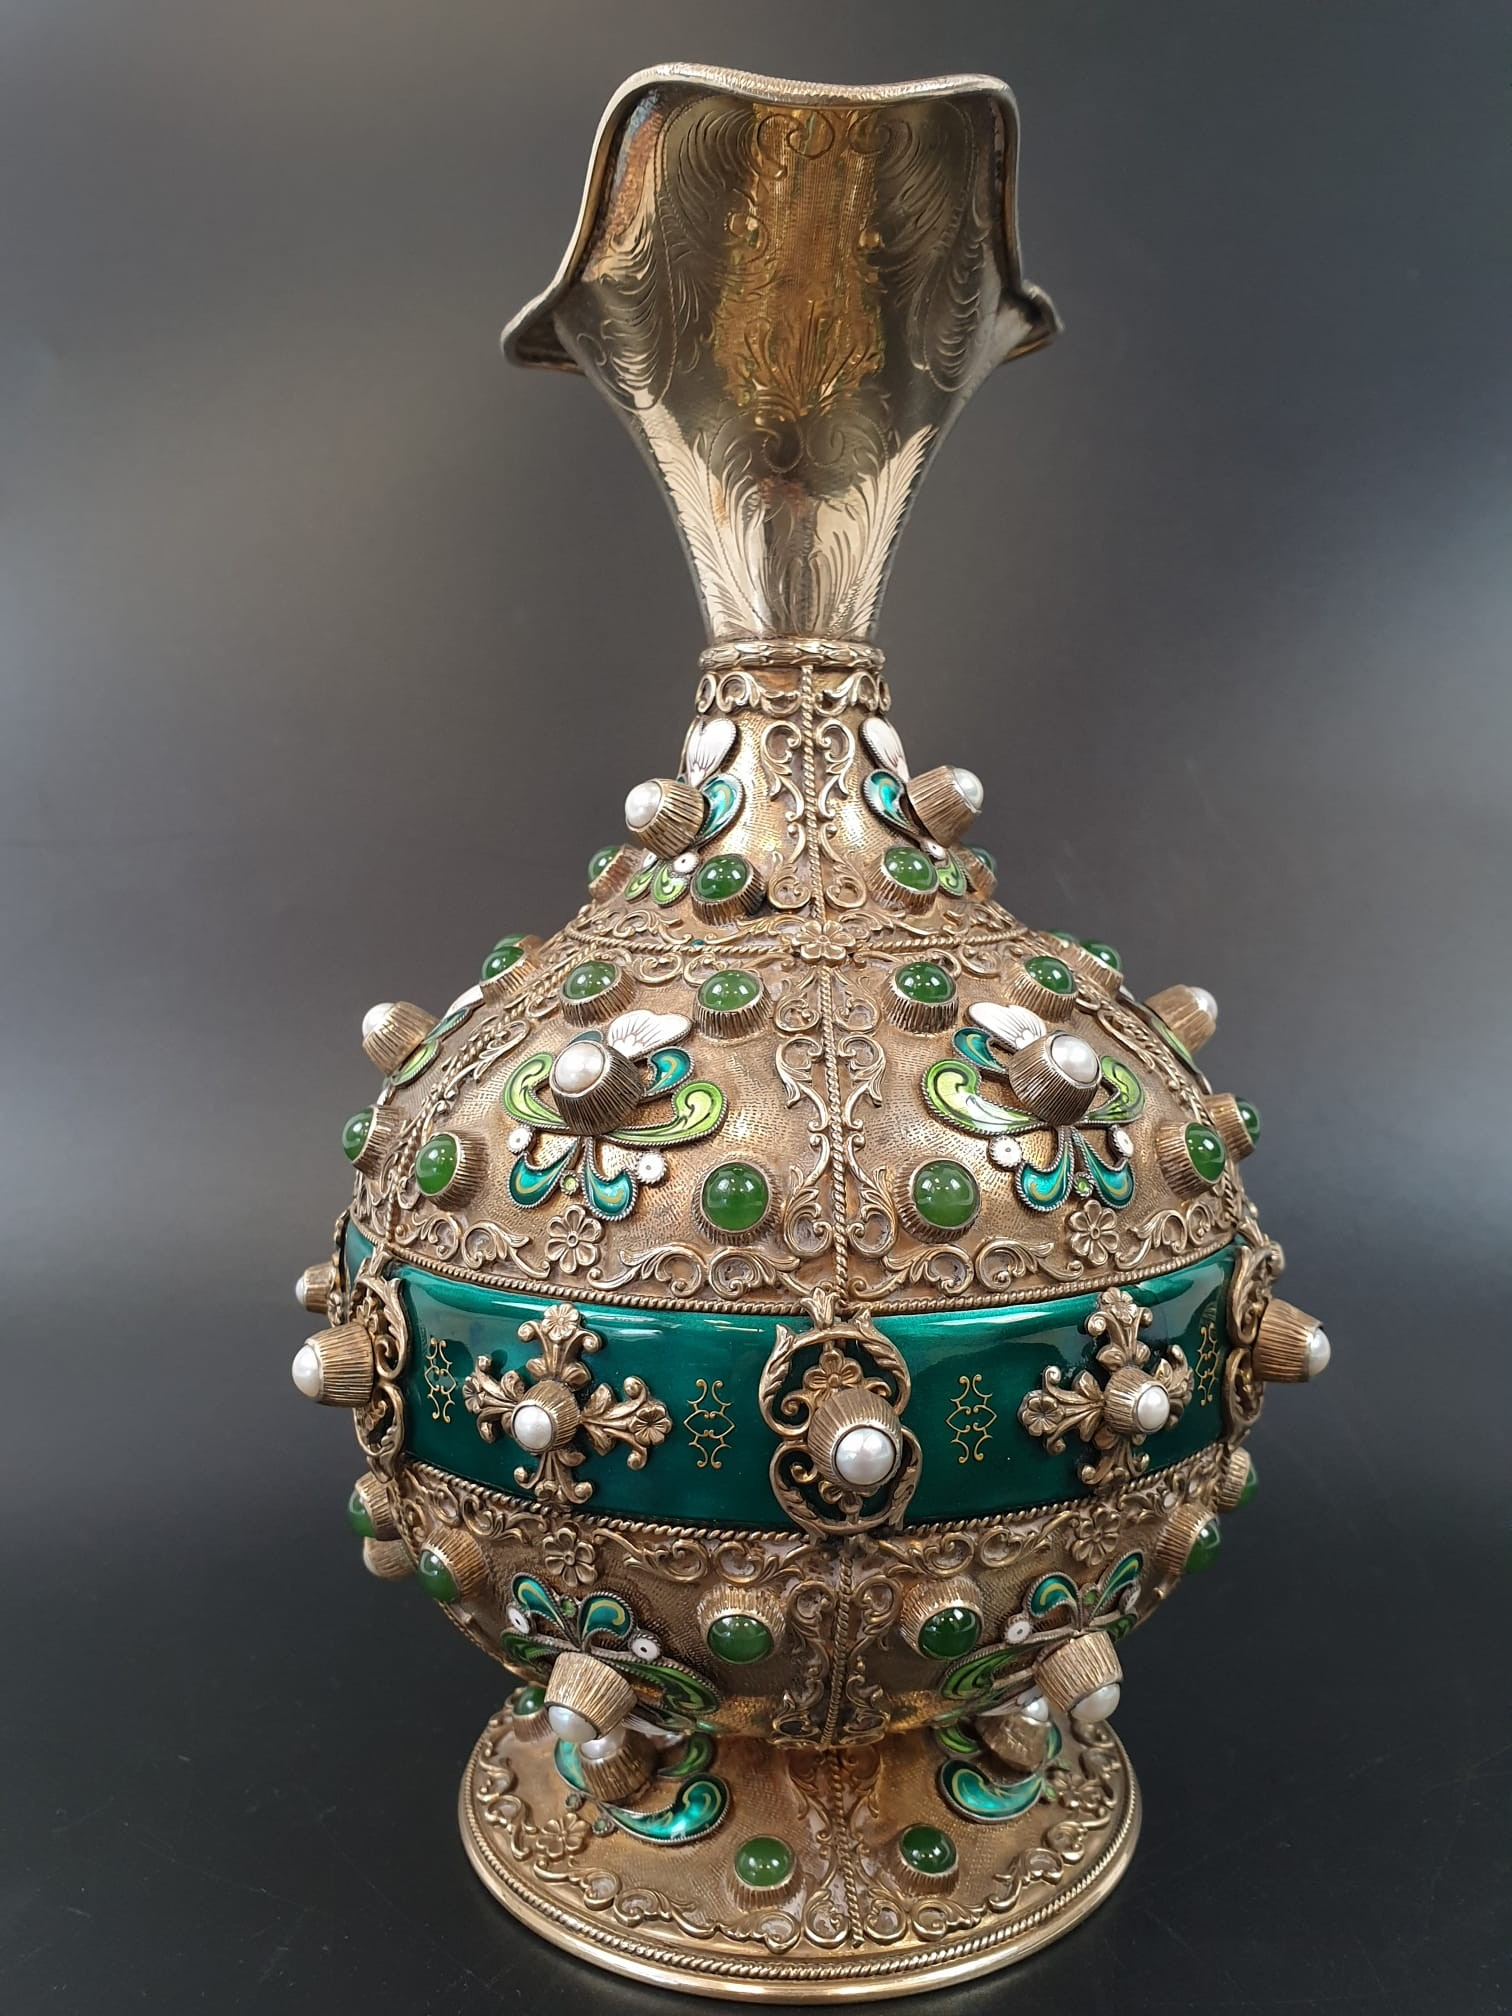 Antique Austrian silver gilt pearl and jade large jug, hand decorated and engraved . 857gms 23 cms. - Image 2 of 15